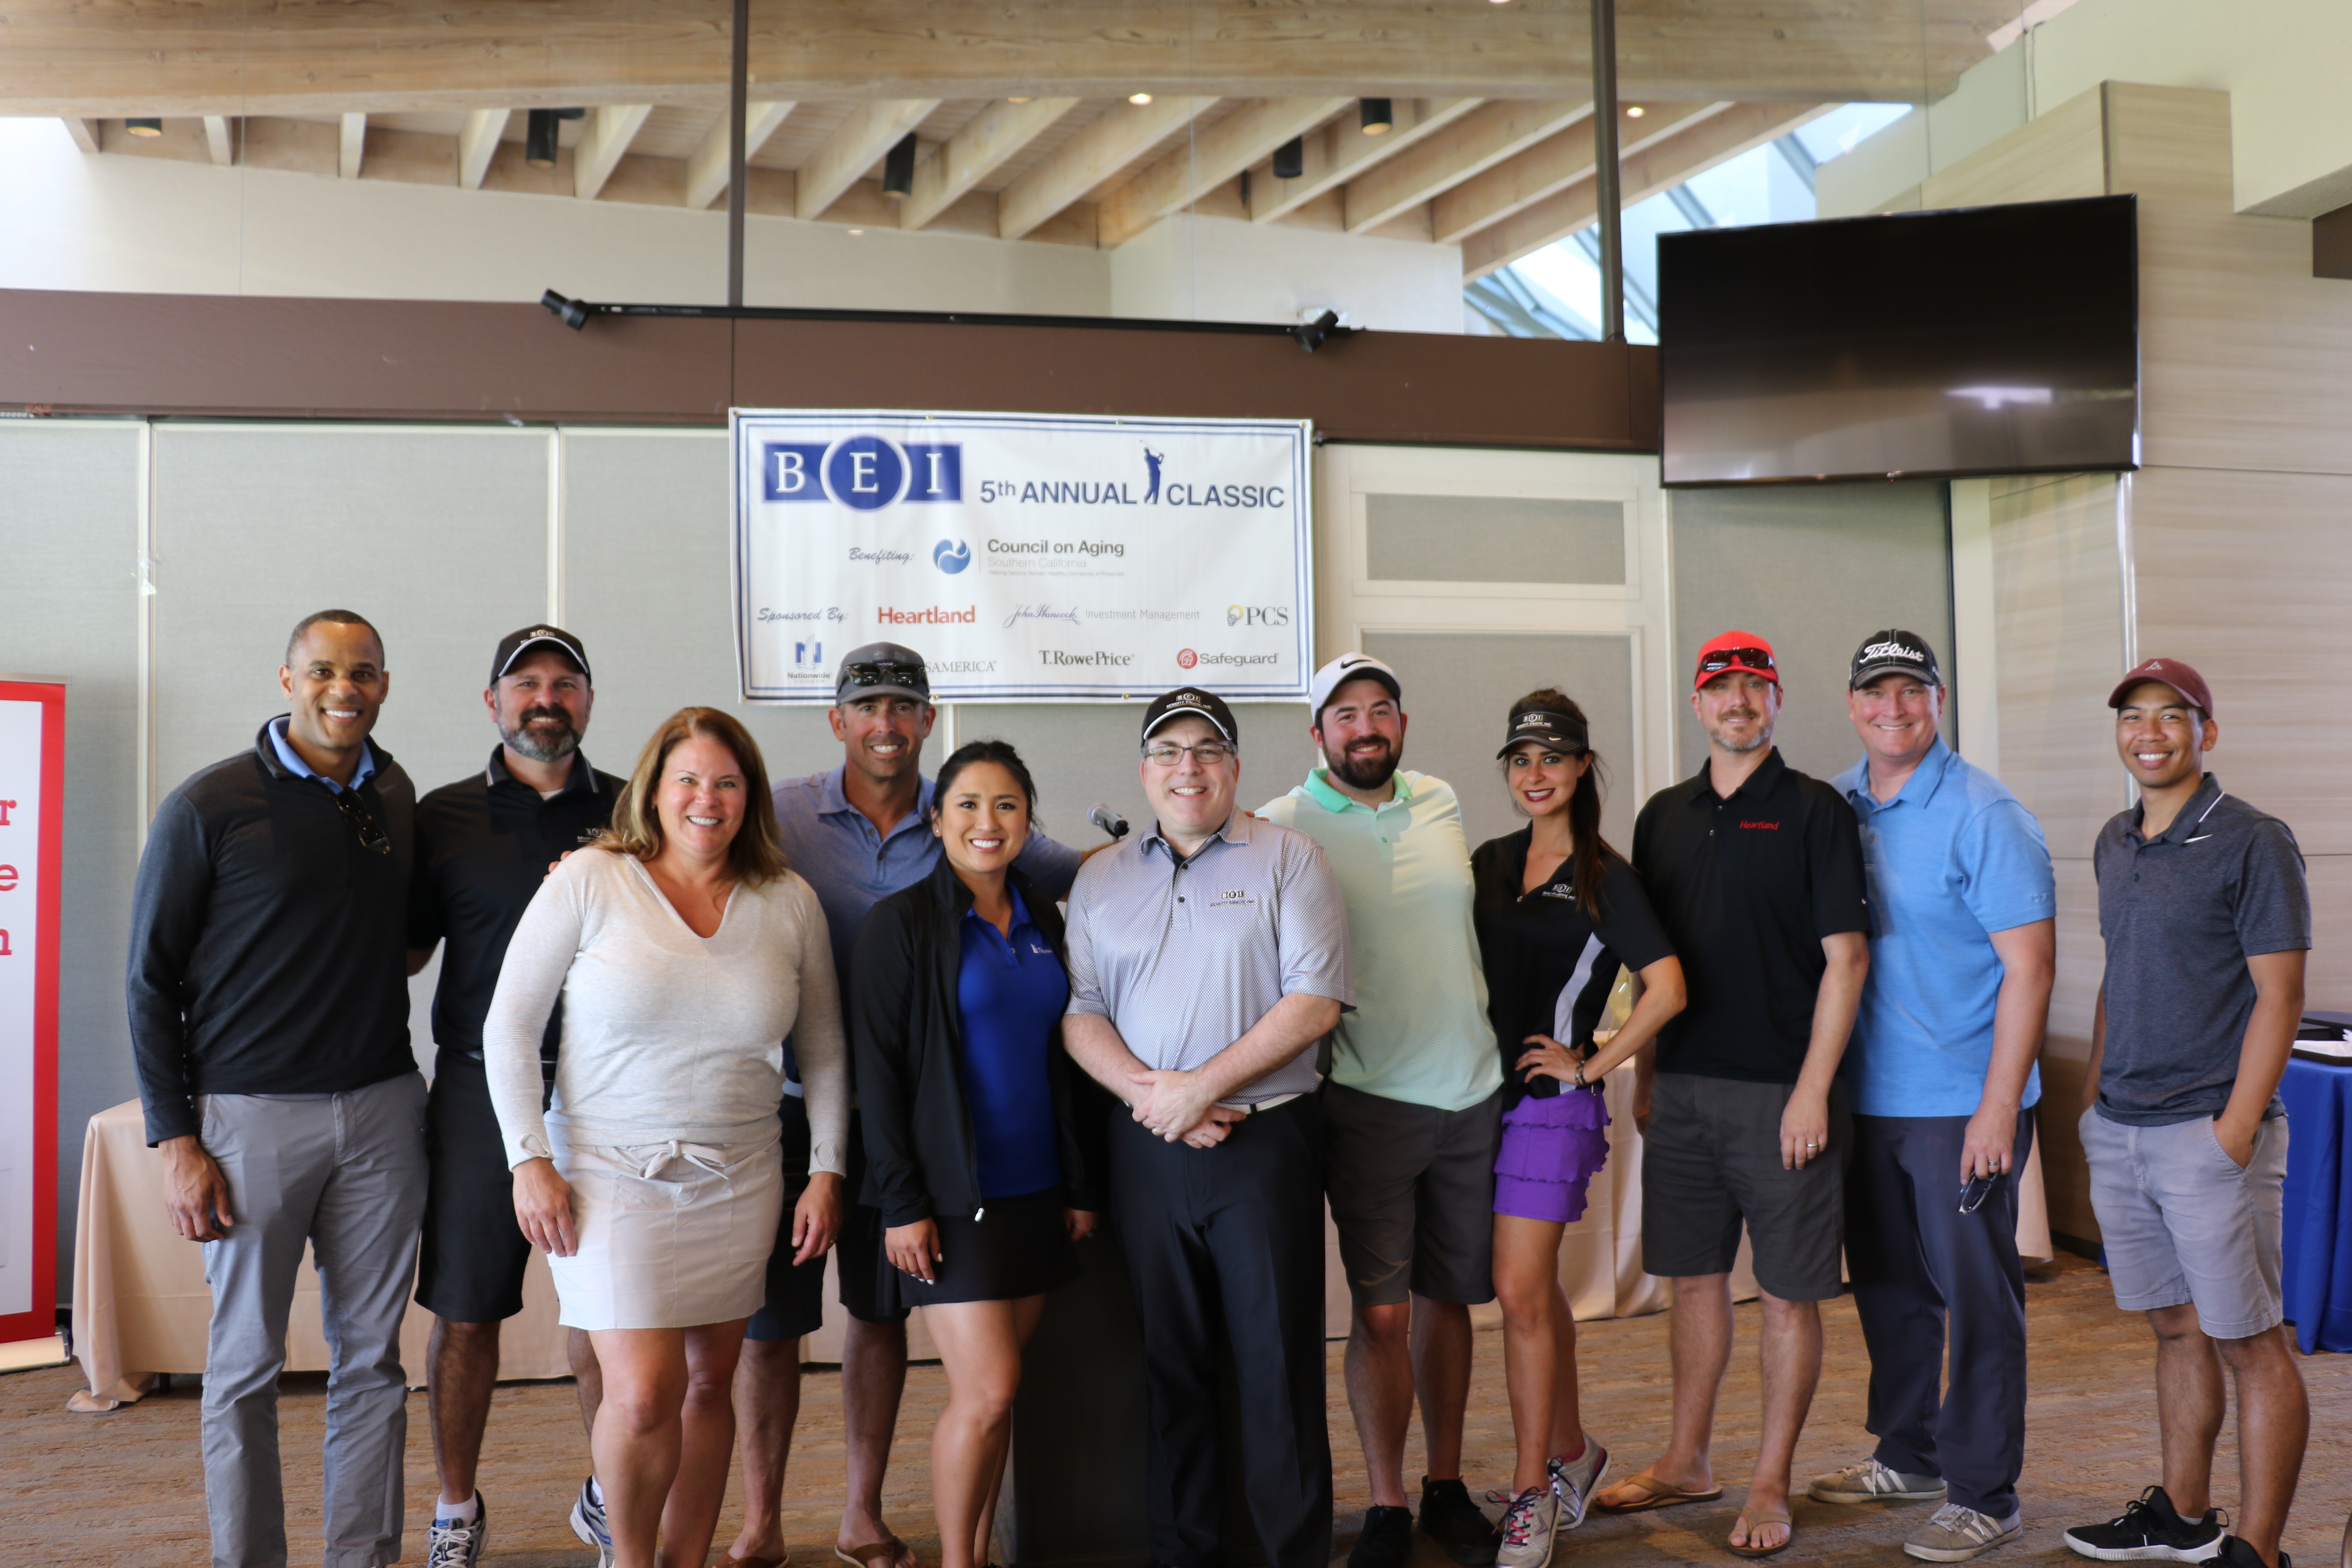 Benefit Equity, Inc. 5th Annual Golf Classic Raises $5,500 for the Elderly In Southern California